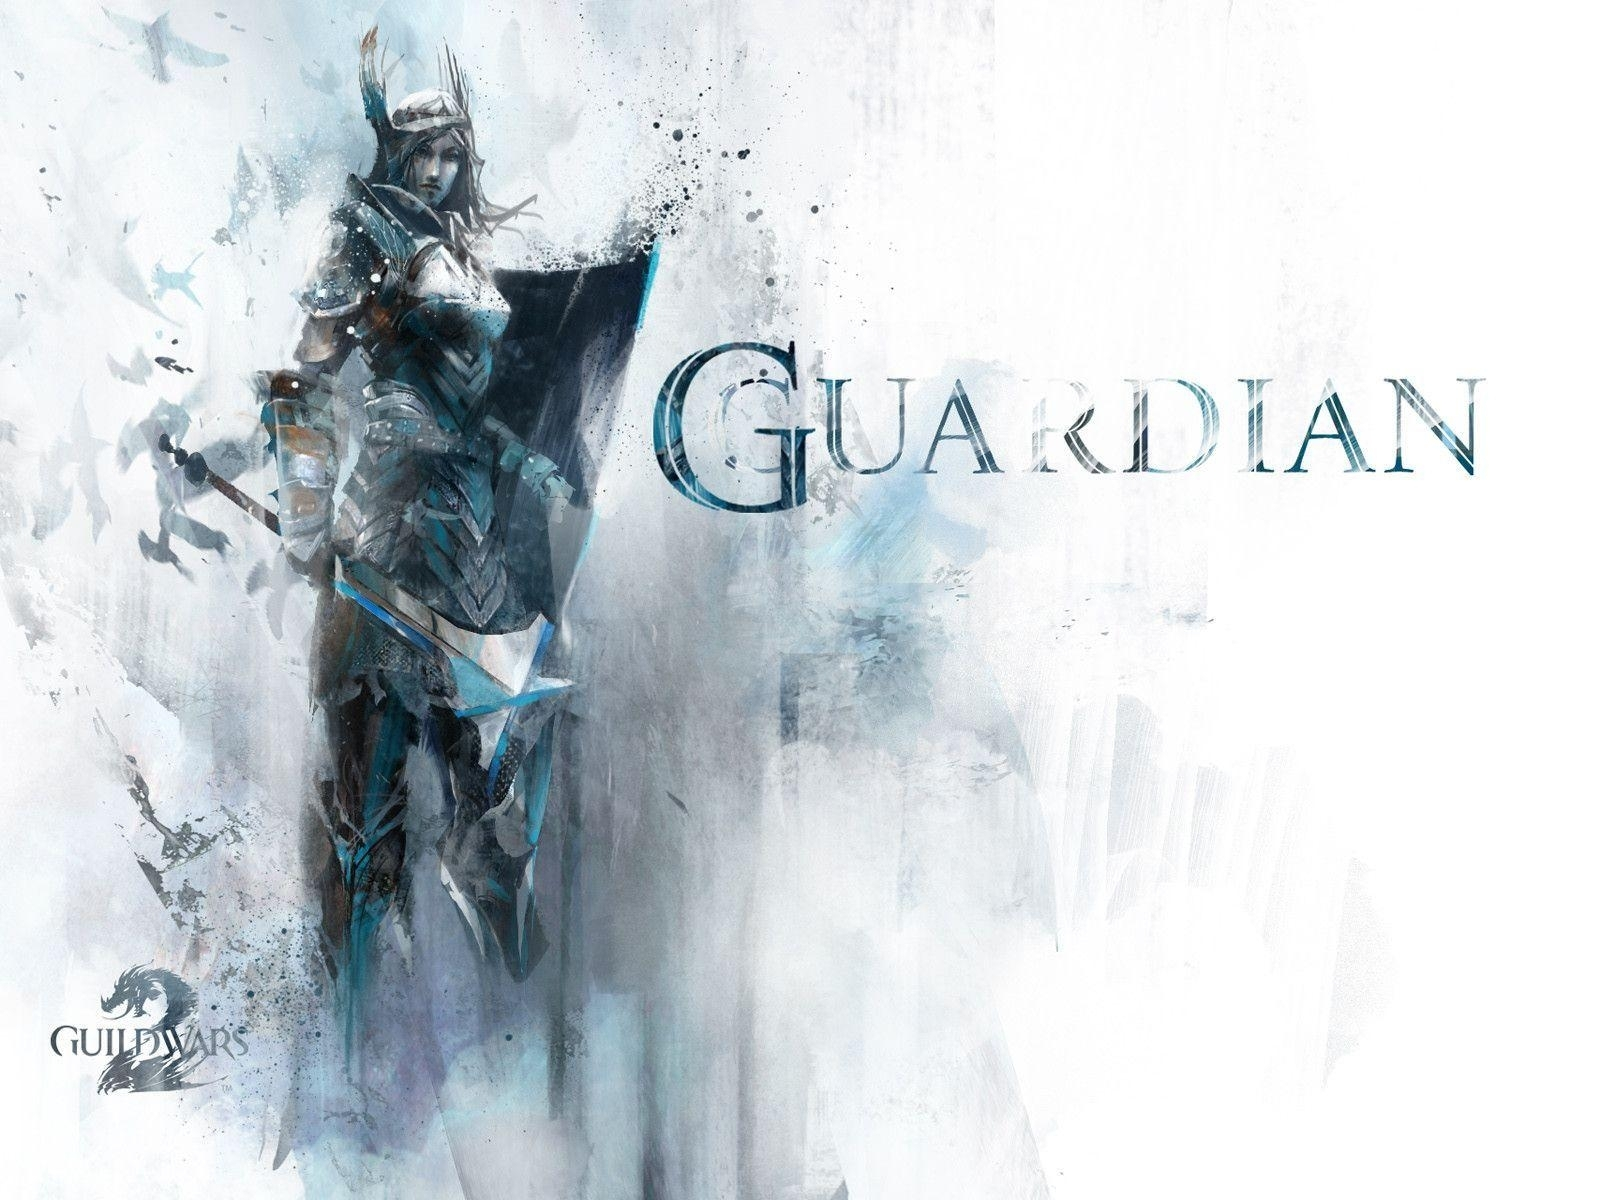 guild wars 2 guardian wallpapers - wallpaper cave